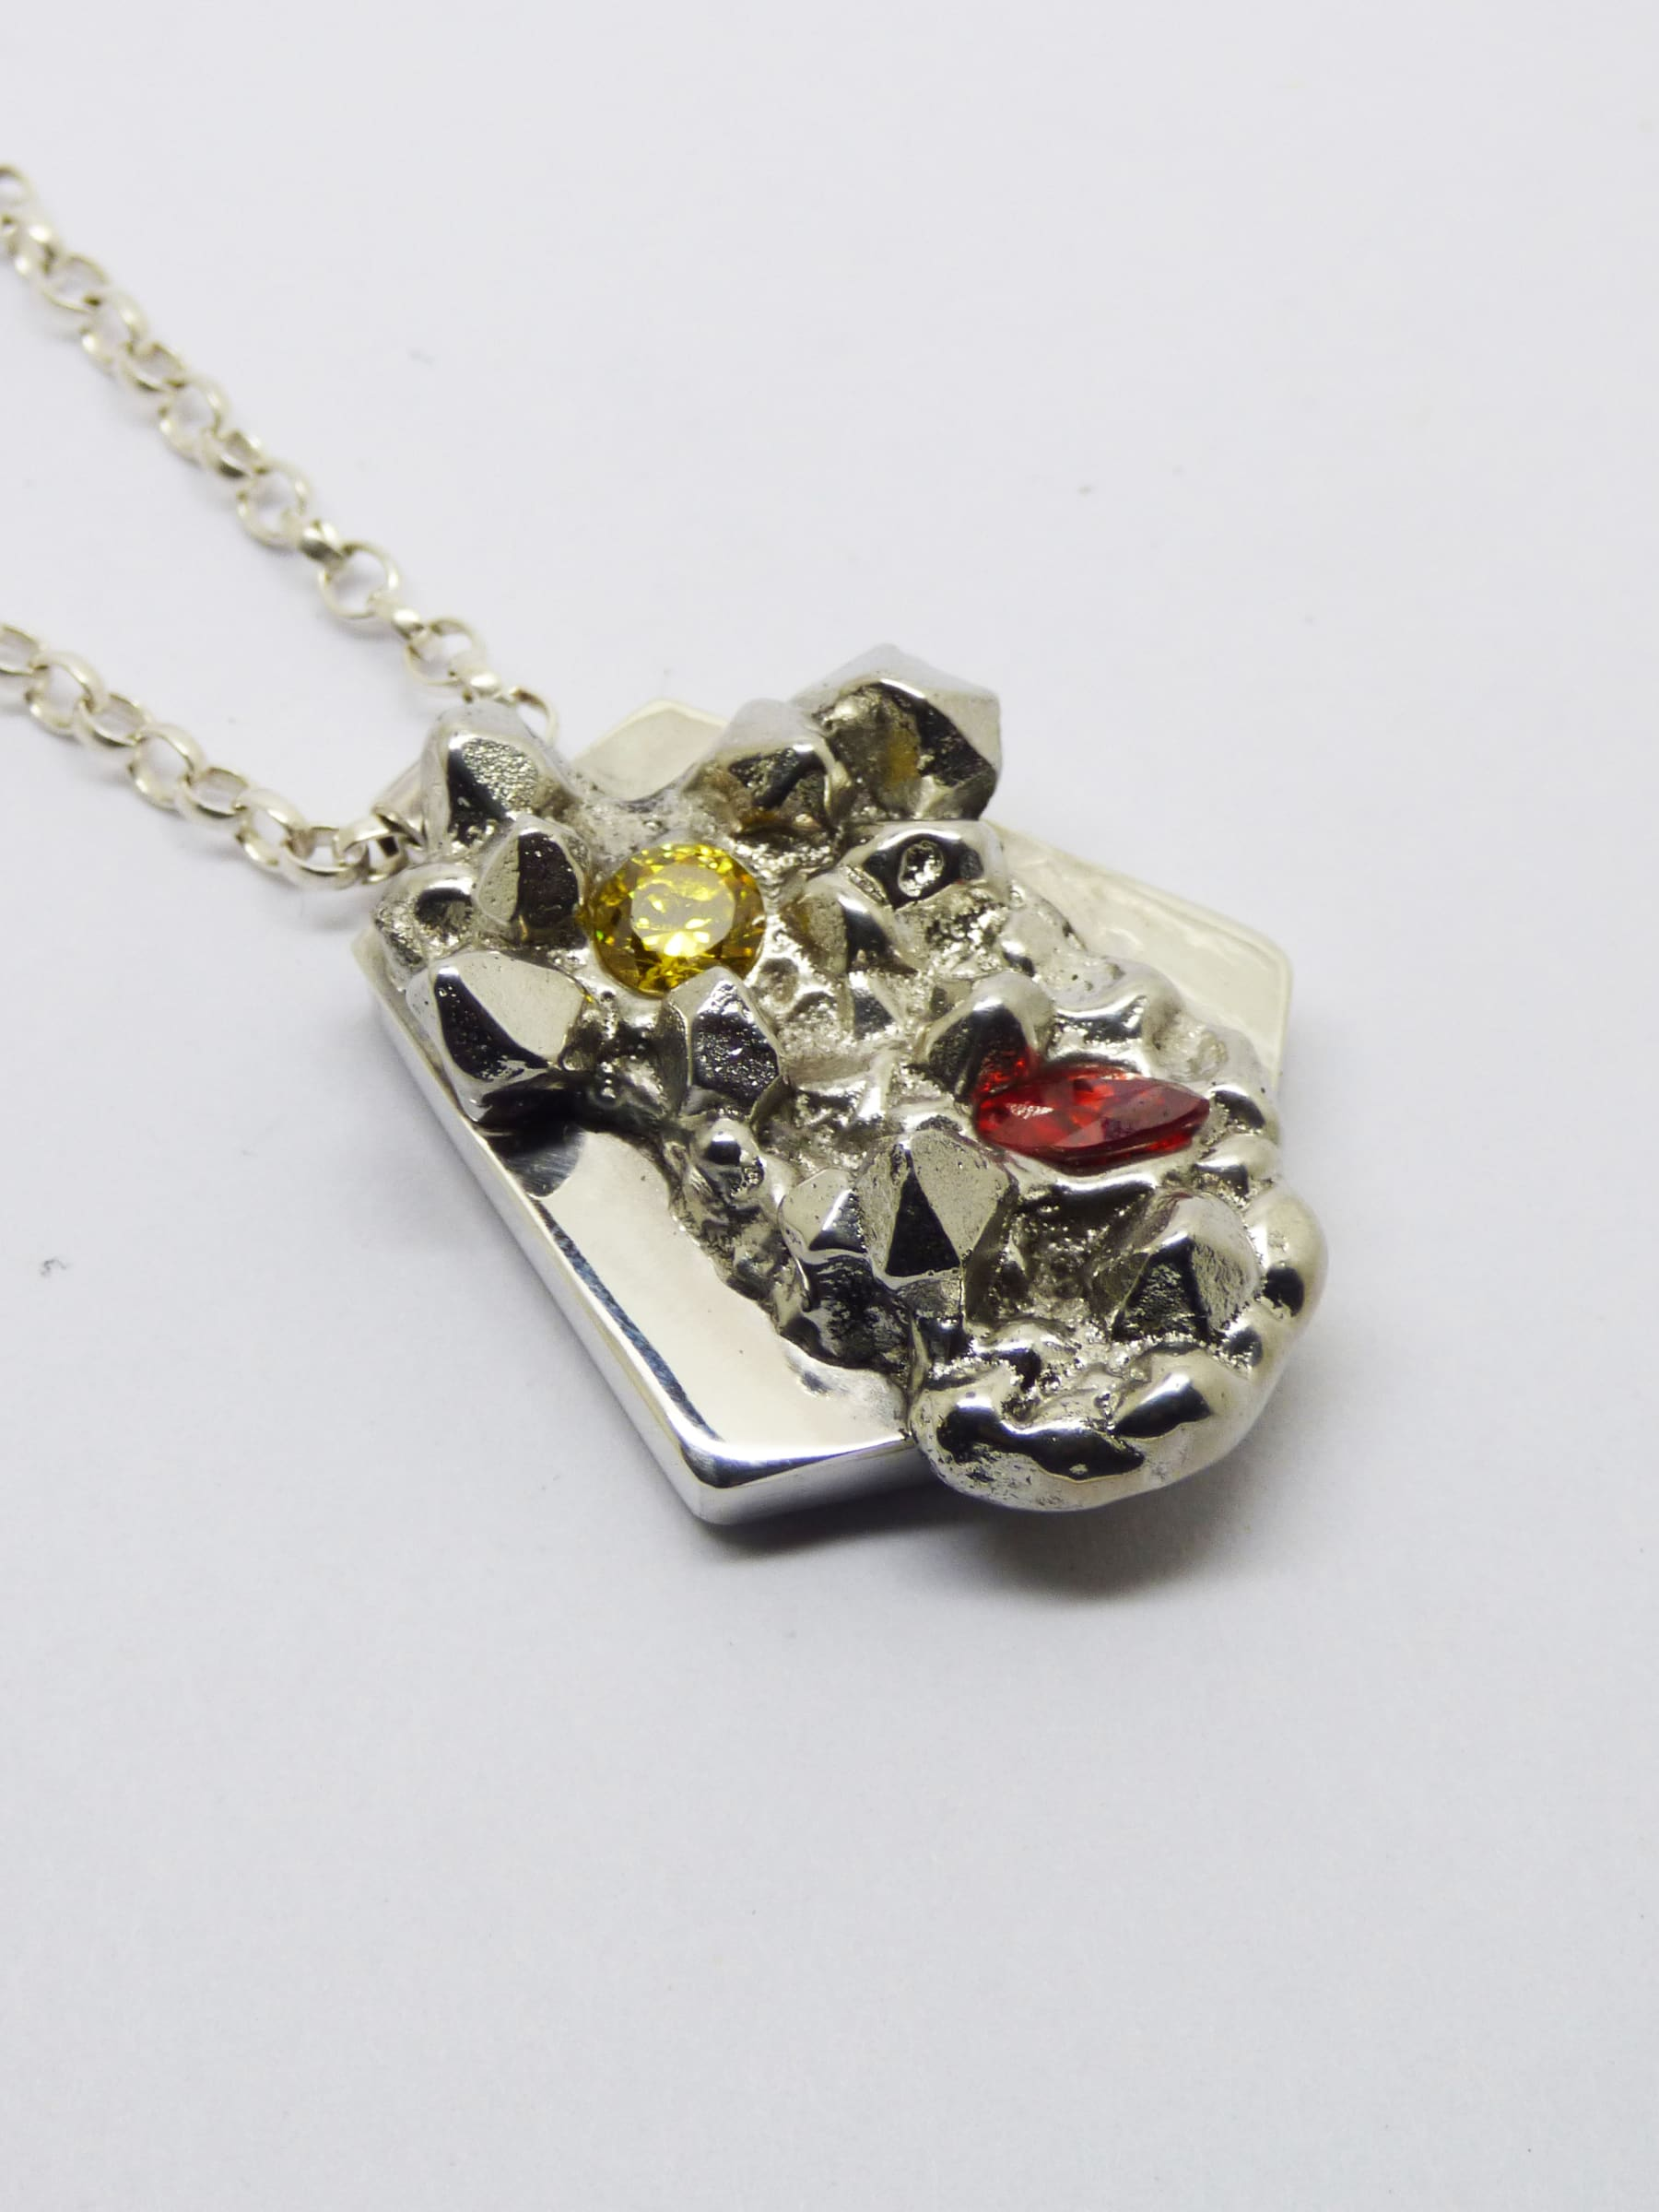 """<span class=""""link fancybox-details-link""""><a href=""""/artists/154-stacey-west/works/4900-stacey-west-found-treasures-pendant-large-2017/"""">View Detail Page</a></span><div class=""""artist""""><strong>Stacey West</strong></div> <div class=""""title""""><em>'Found Treasures' Pendant – large</em>, 2017</div> <div class=""""medium"""">Pewter and silver pendant on sterling silver chain with red and yellow cubic zirconia. -Large 16""""</div><div class=""""price"""">£145.00</div><div class=""""copyright_line"""">Copyright The Artist</div>"""